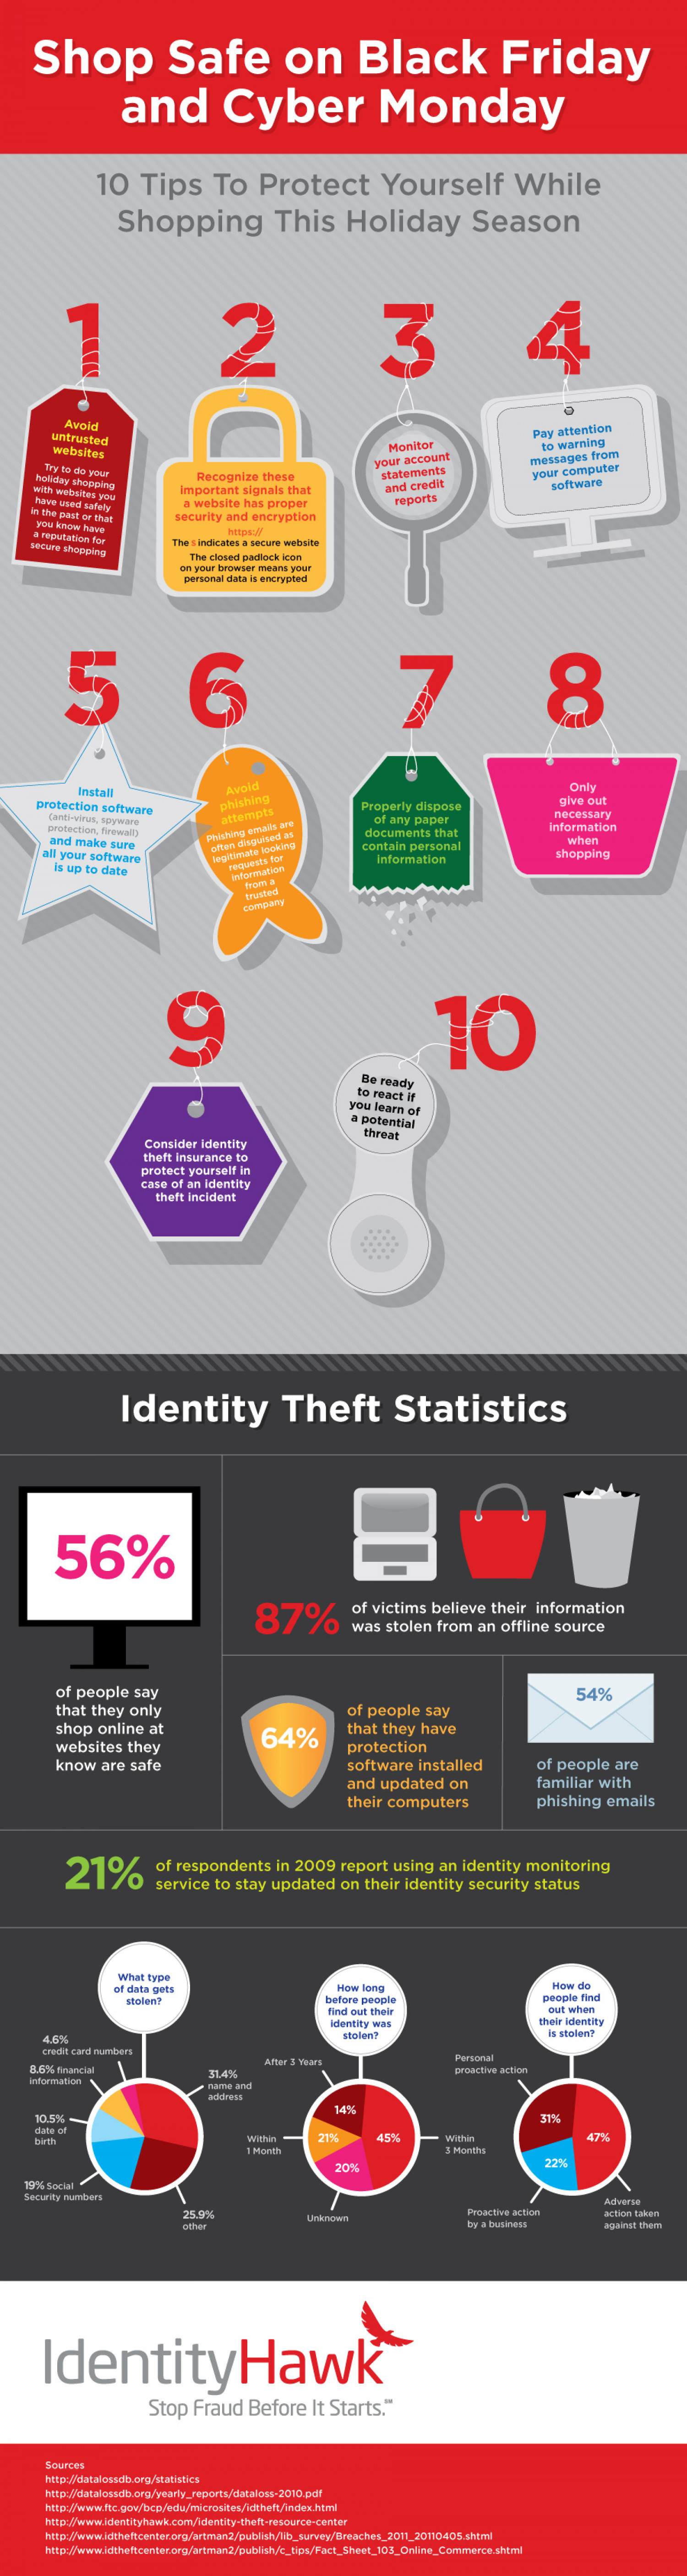 Shop Safe On a Black Friday and a Cyber Monday Infographic